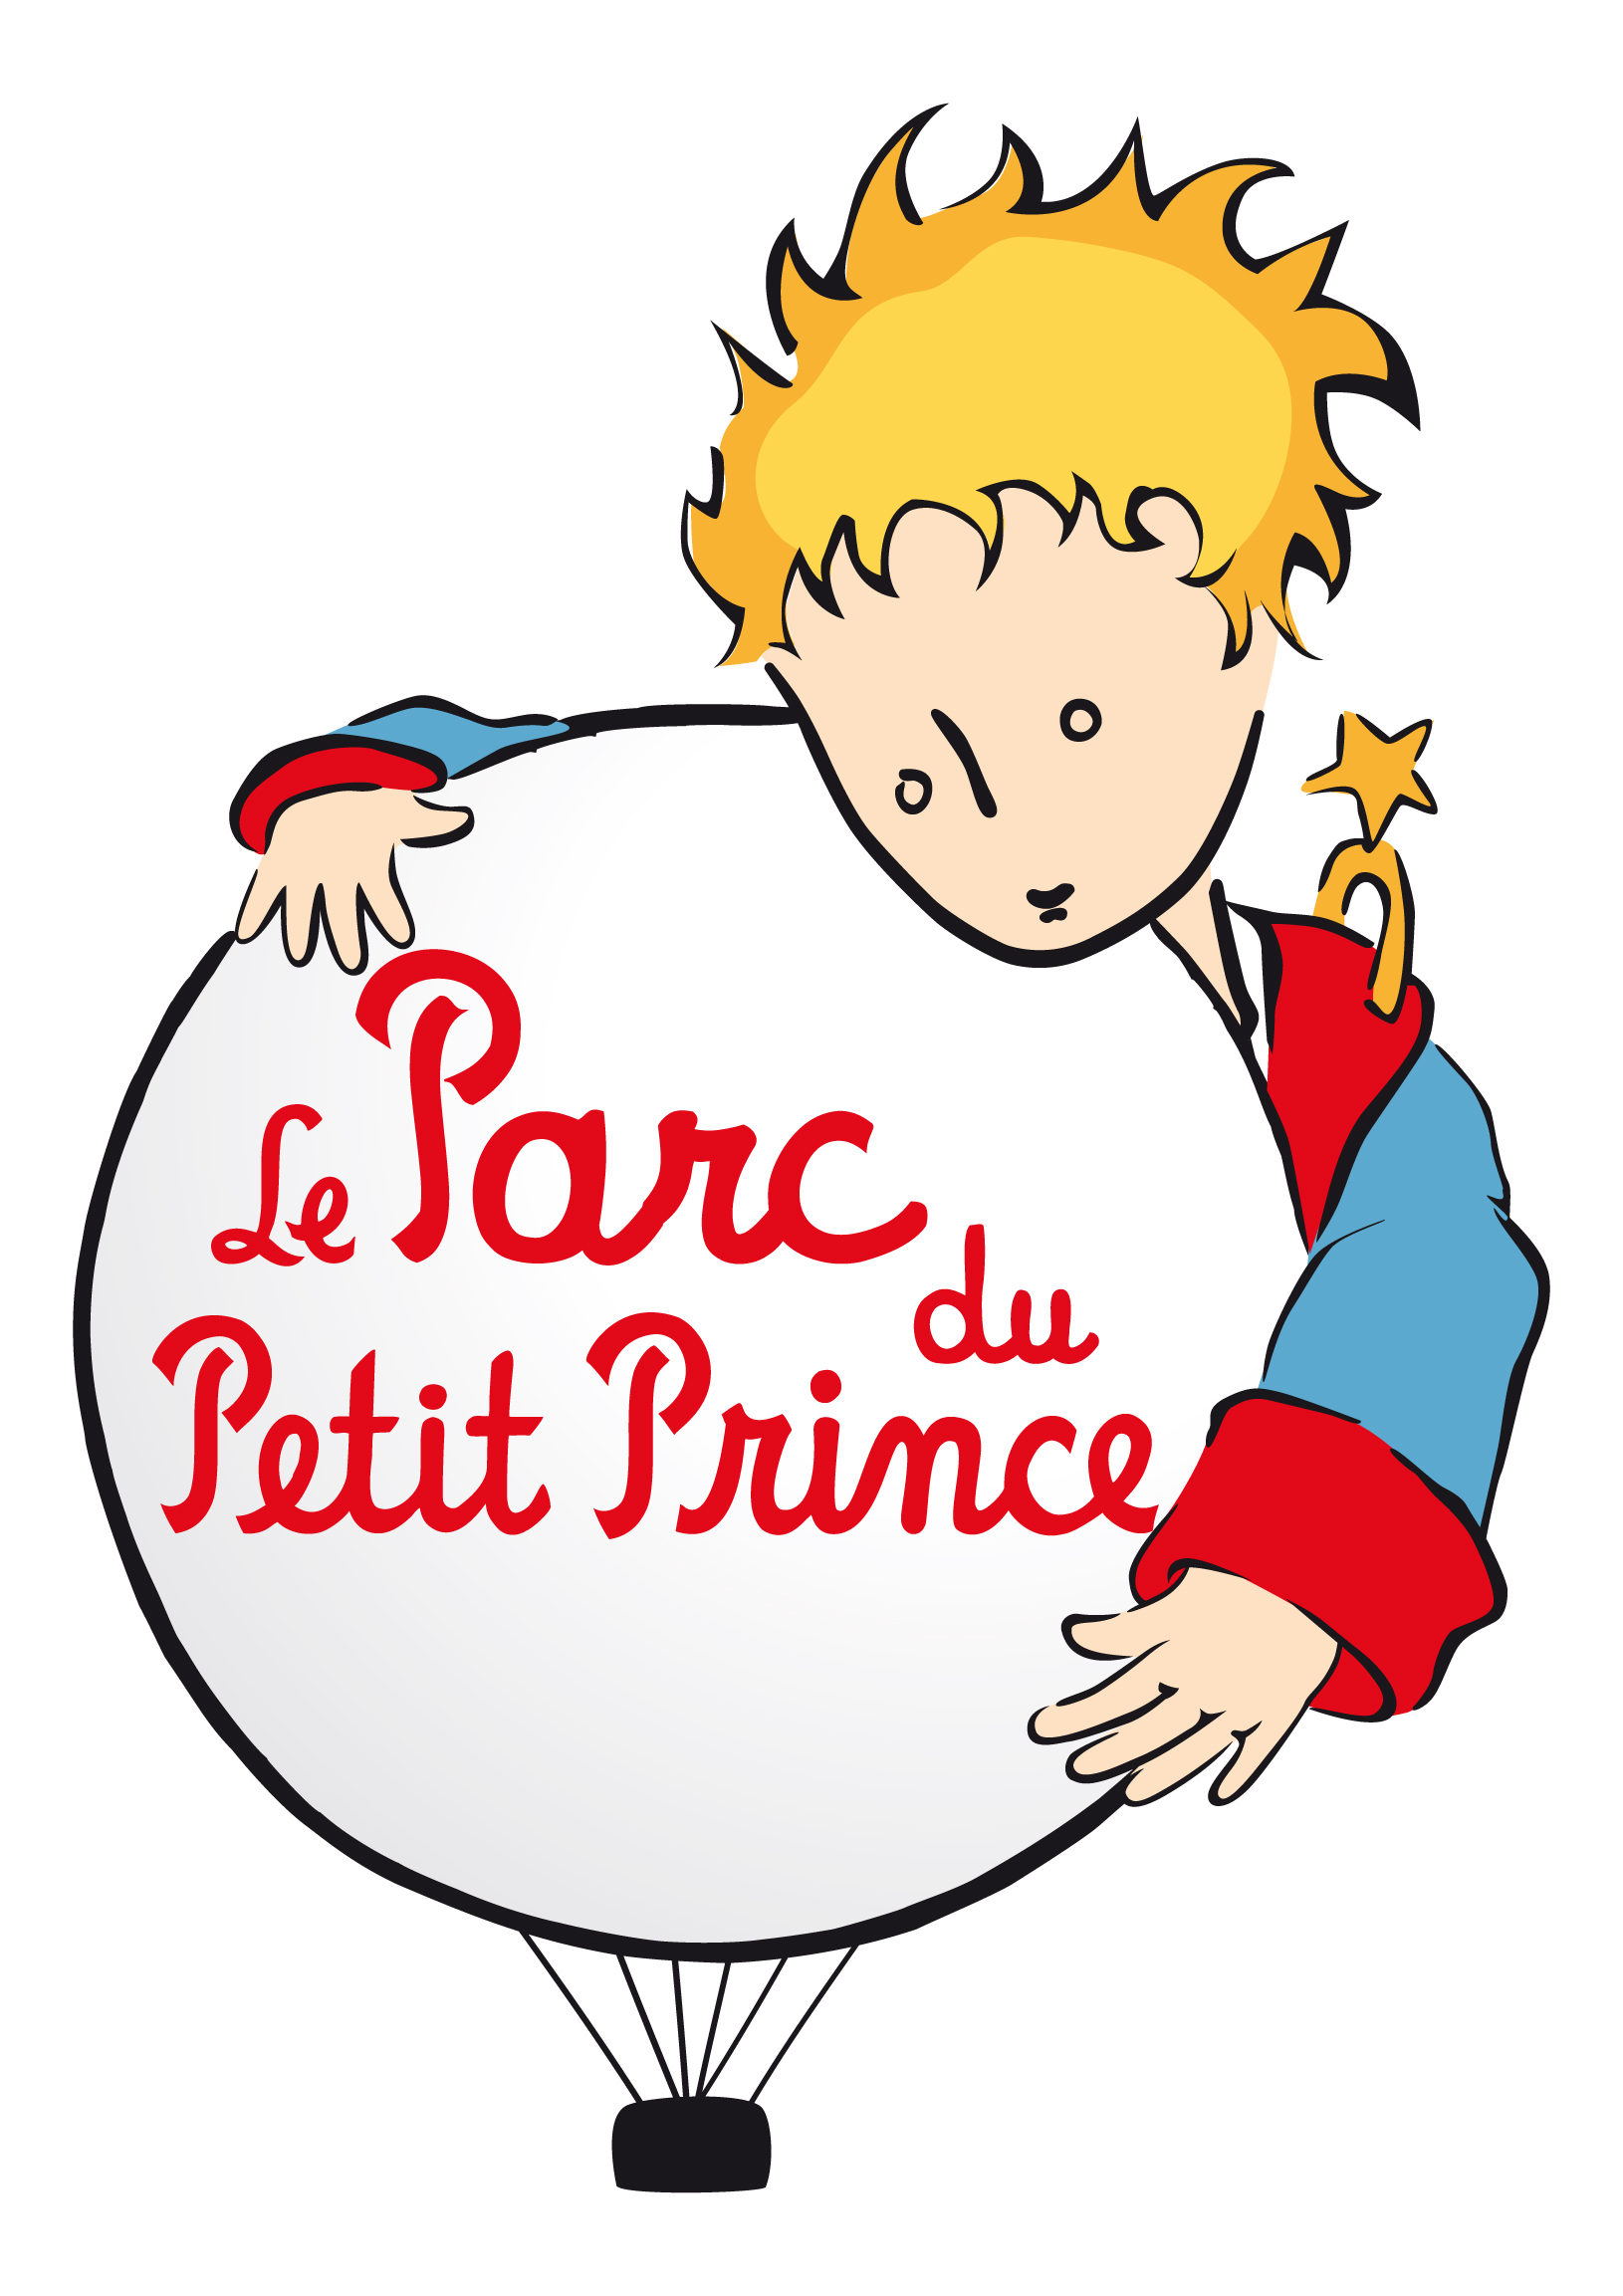 le petit prince essay Le petit prince essay since 1989 our certified professional essay writers have assisted tens of thousands of clients to land great jobs and advance their careers.